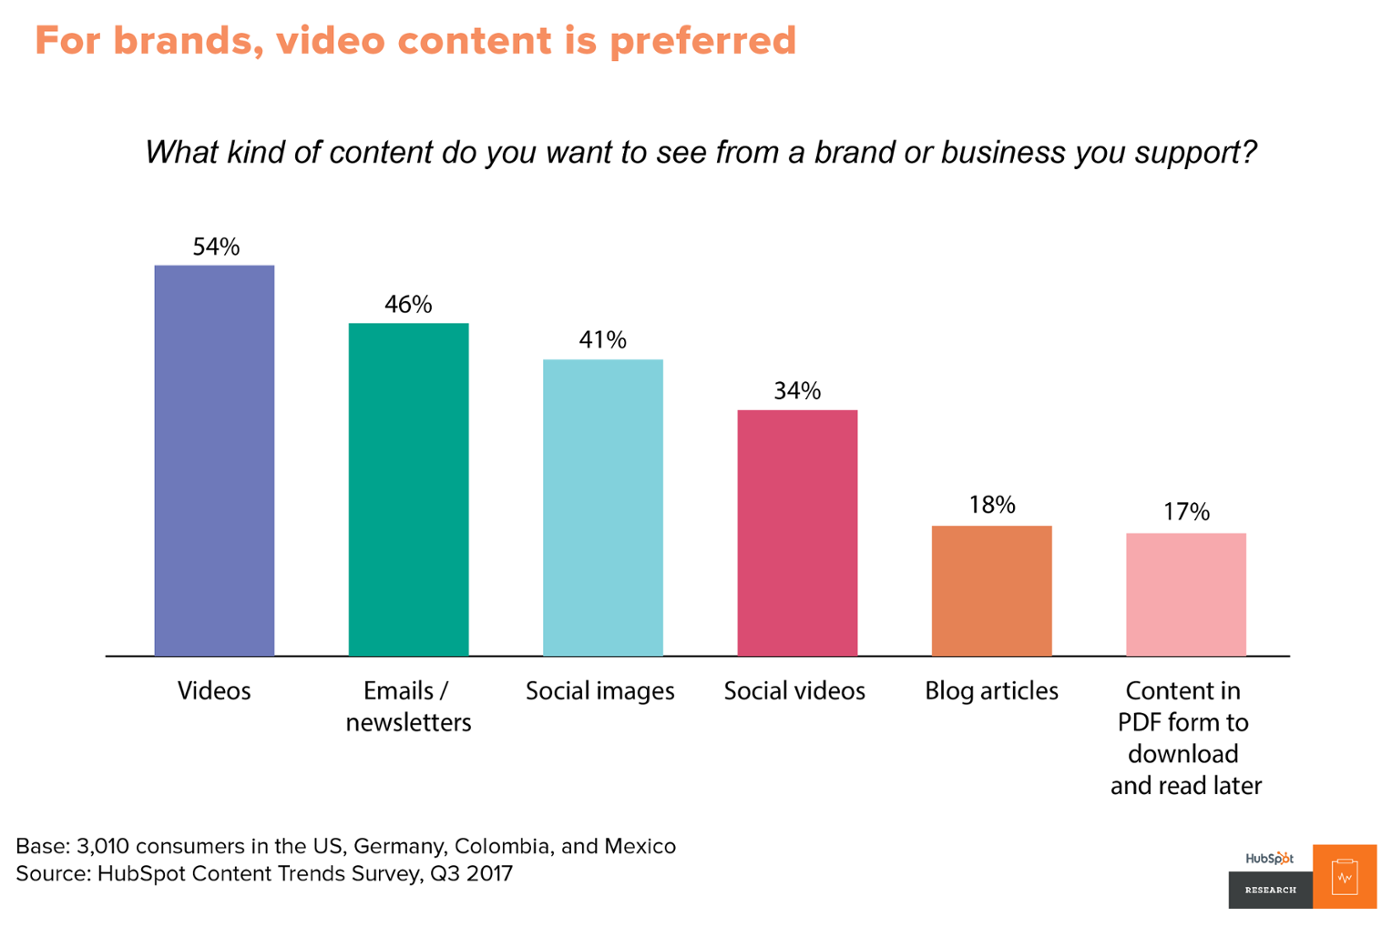 A bar graph showing the kind of content that the audience wants to see